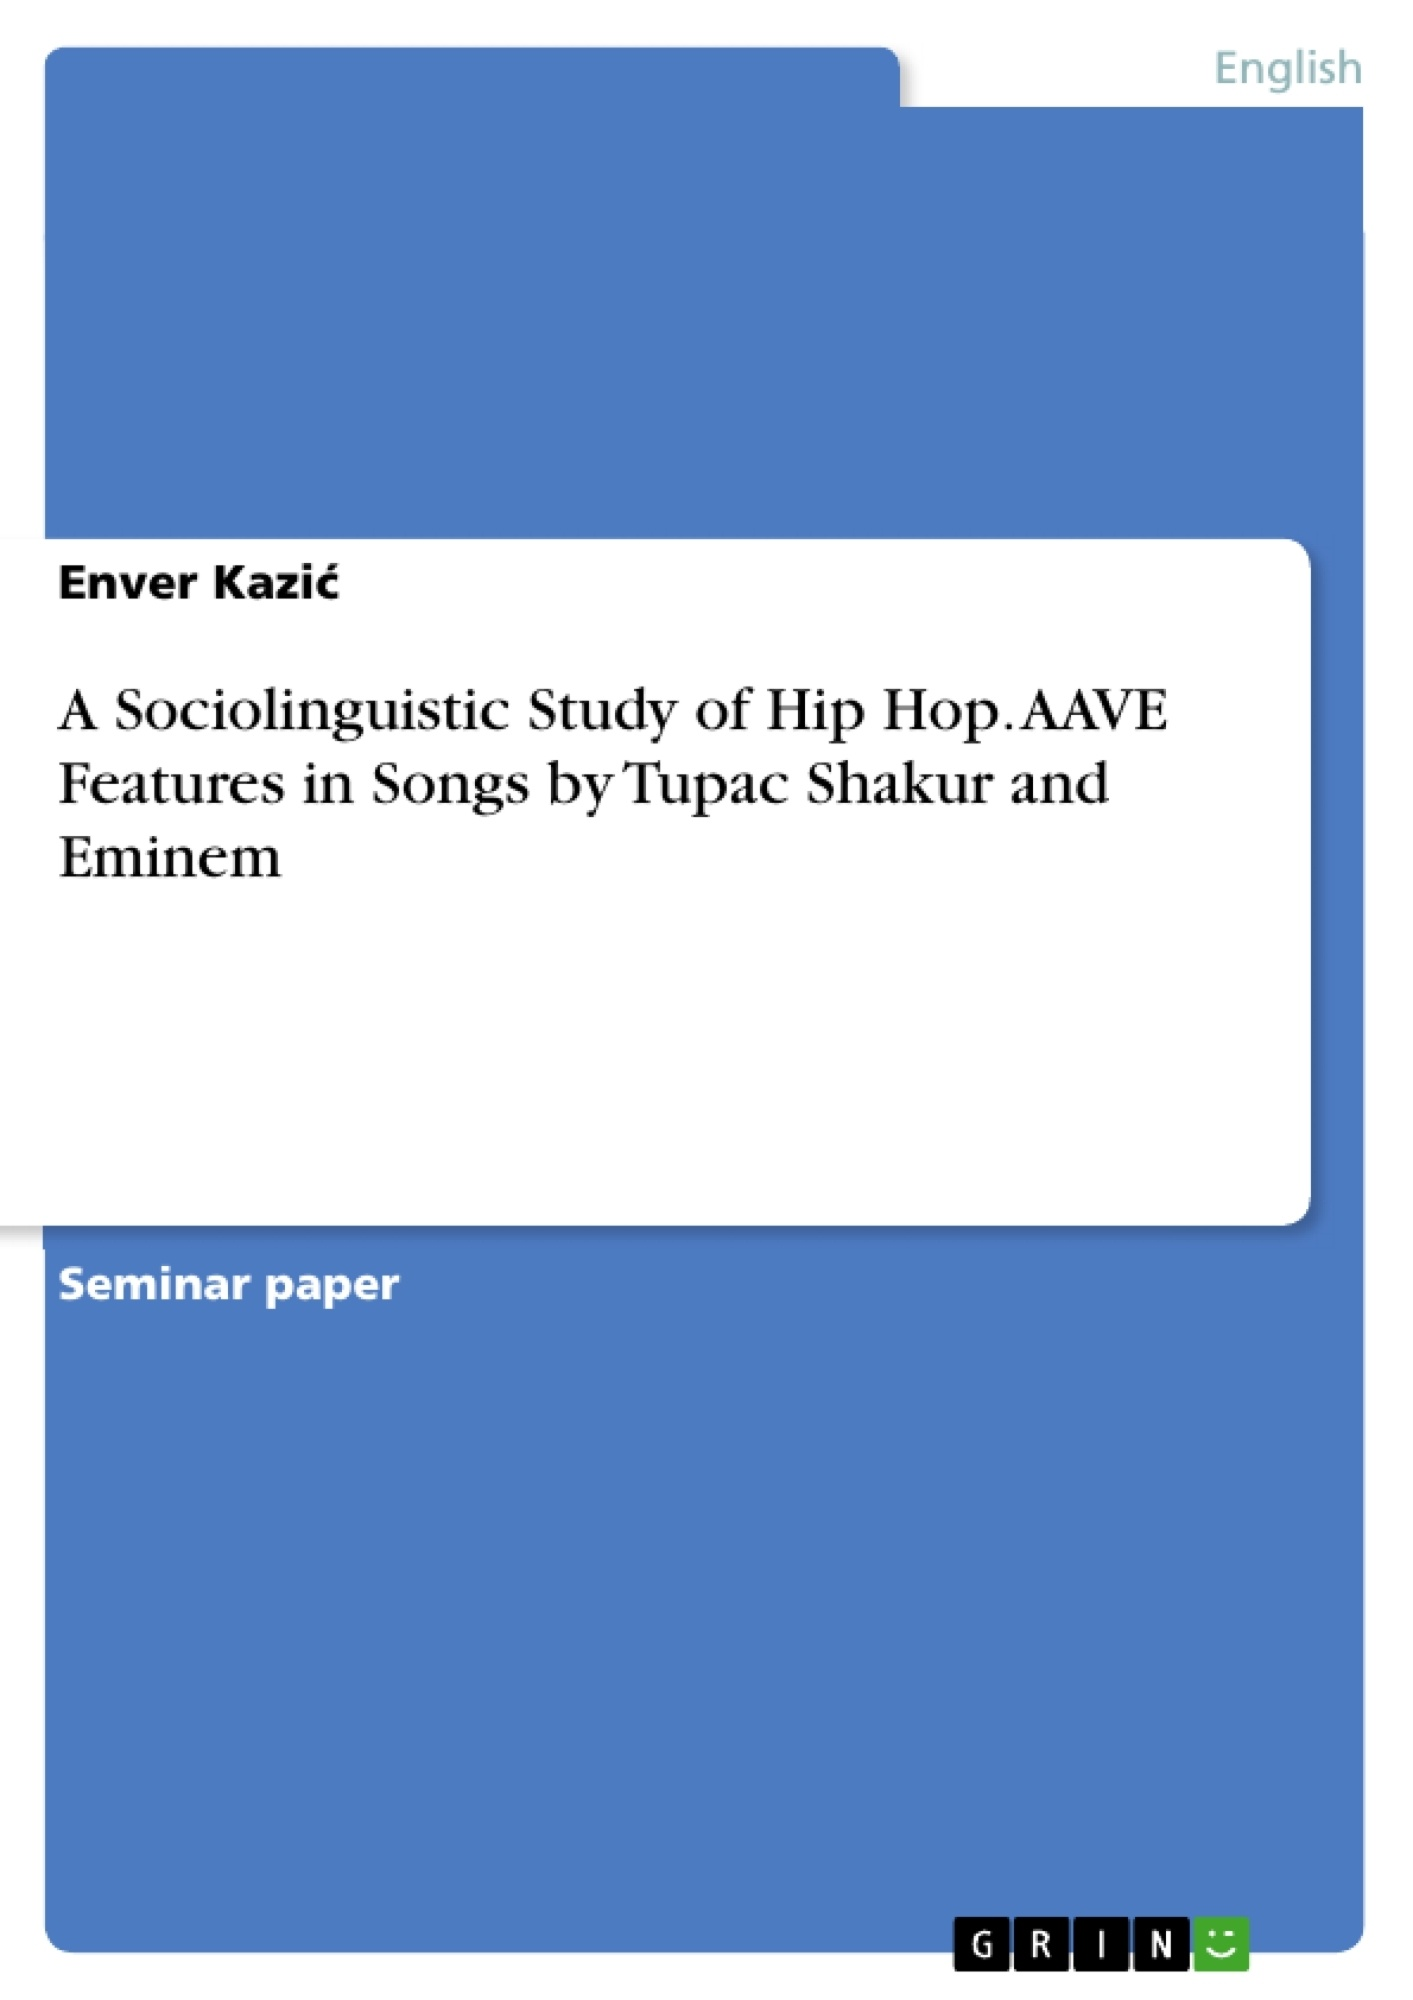 GRIN - A Sociolinguistic Study of Hip Hop  AAVE Features in Songs by Tupac  Shakur and Eminem